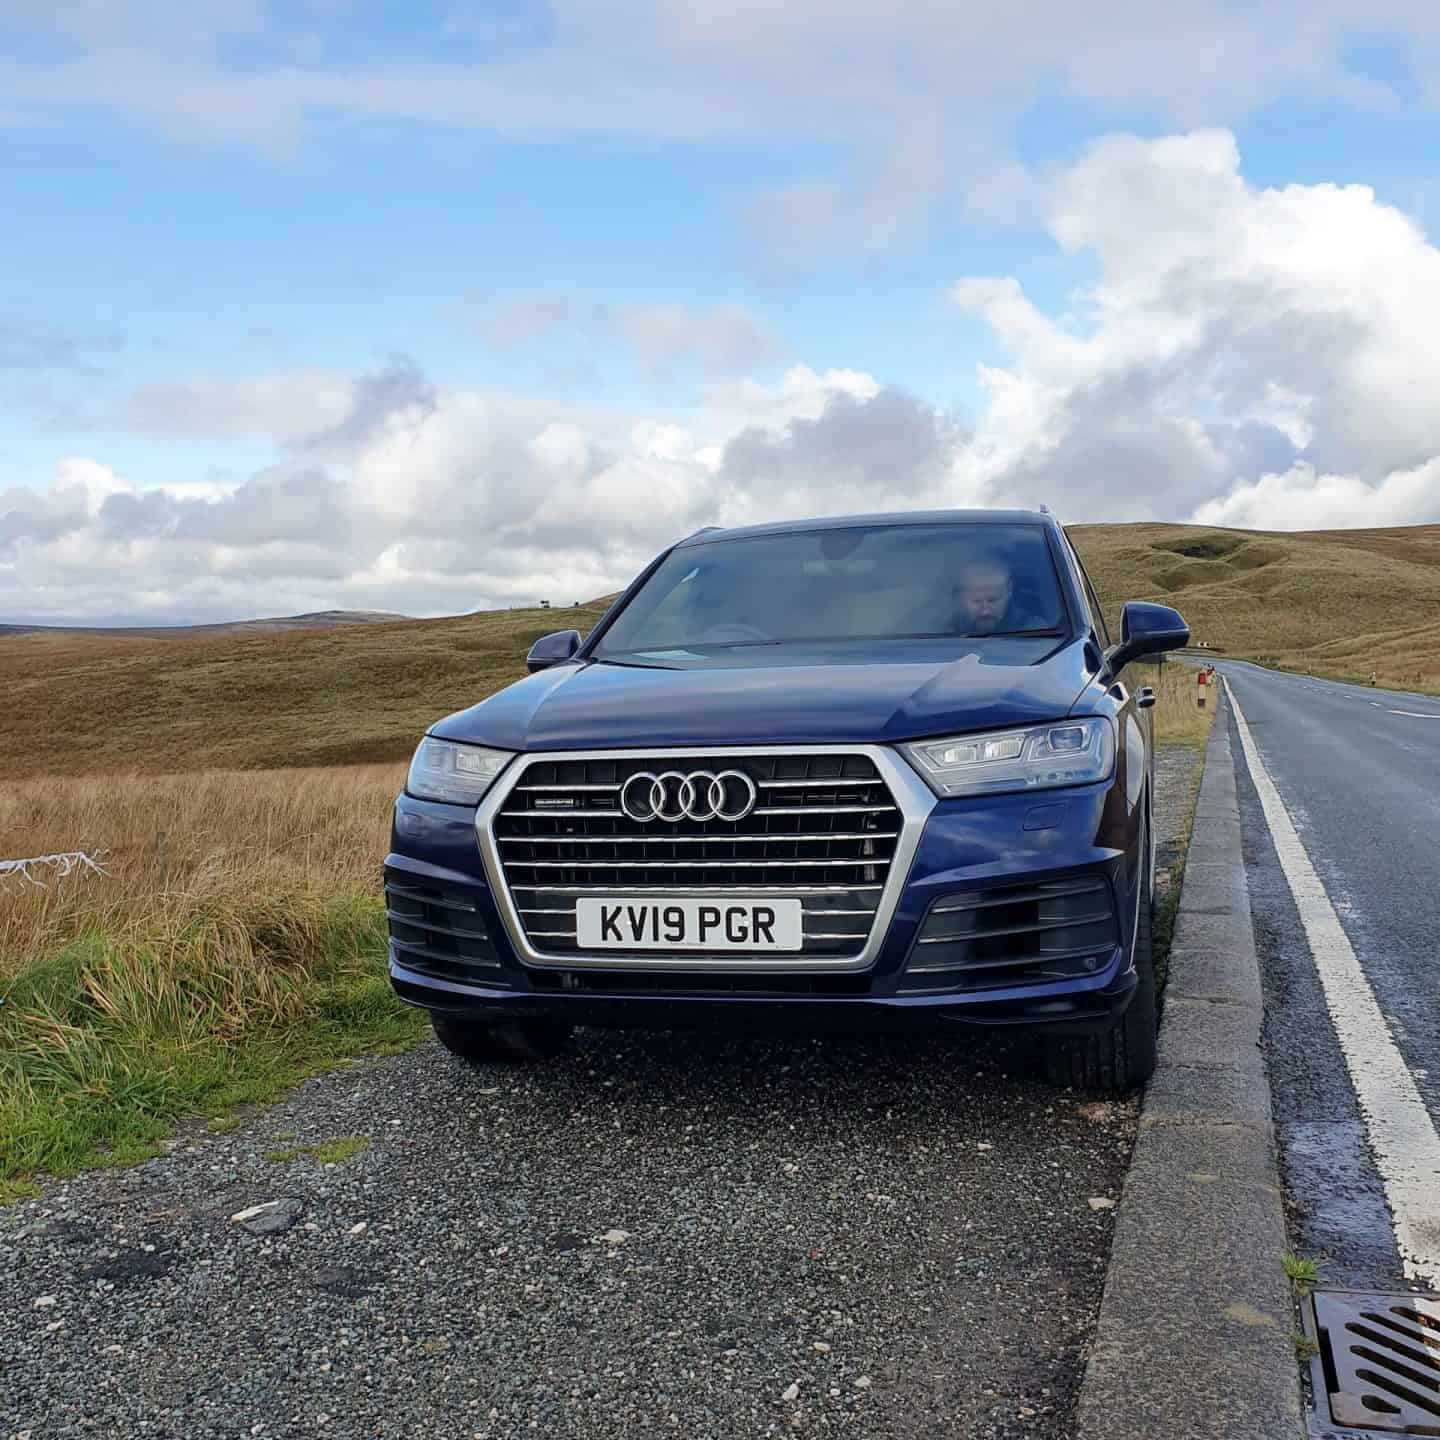 Navy blue Audi Q7 hired for the weekend from Audi on demand Oldham